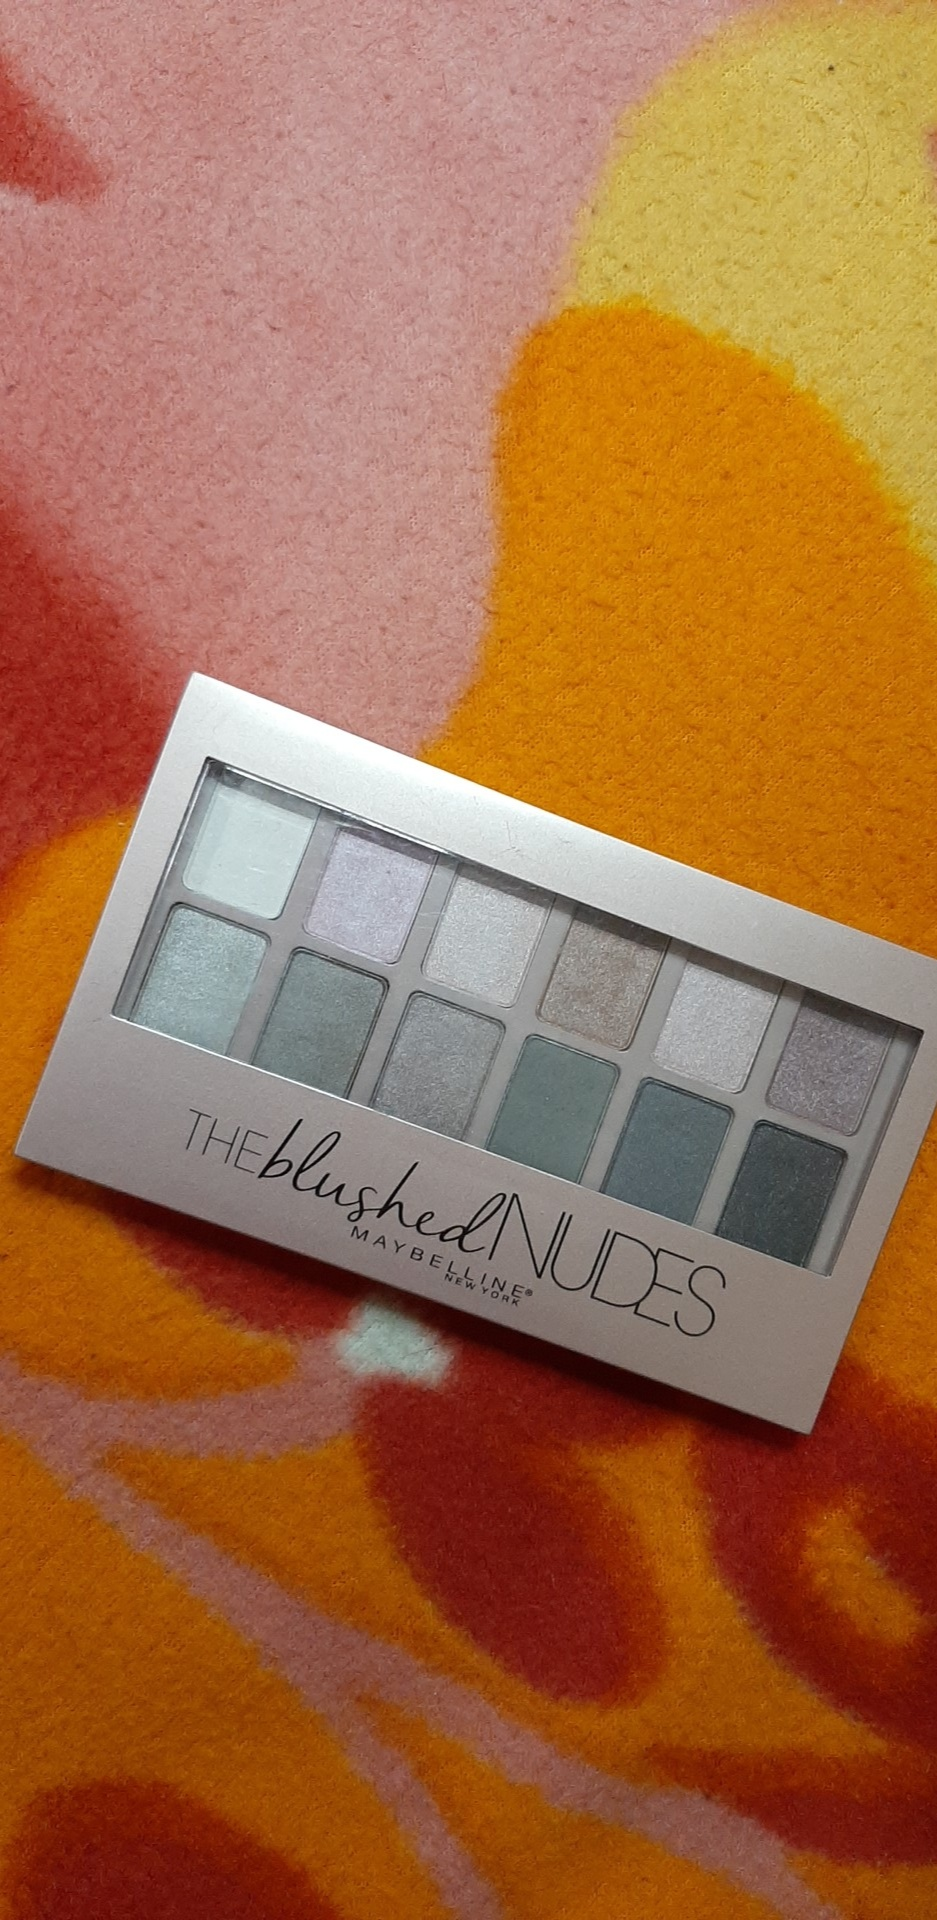 Maybelline New York The Blushed Nudes Palette-Maybelline blushed nudes palette-By simranwalia29